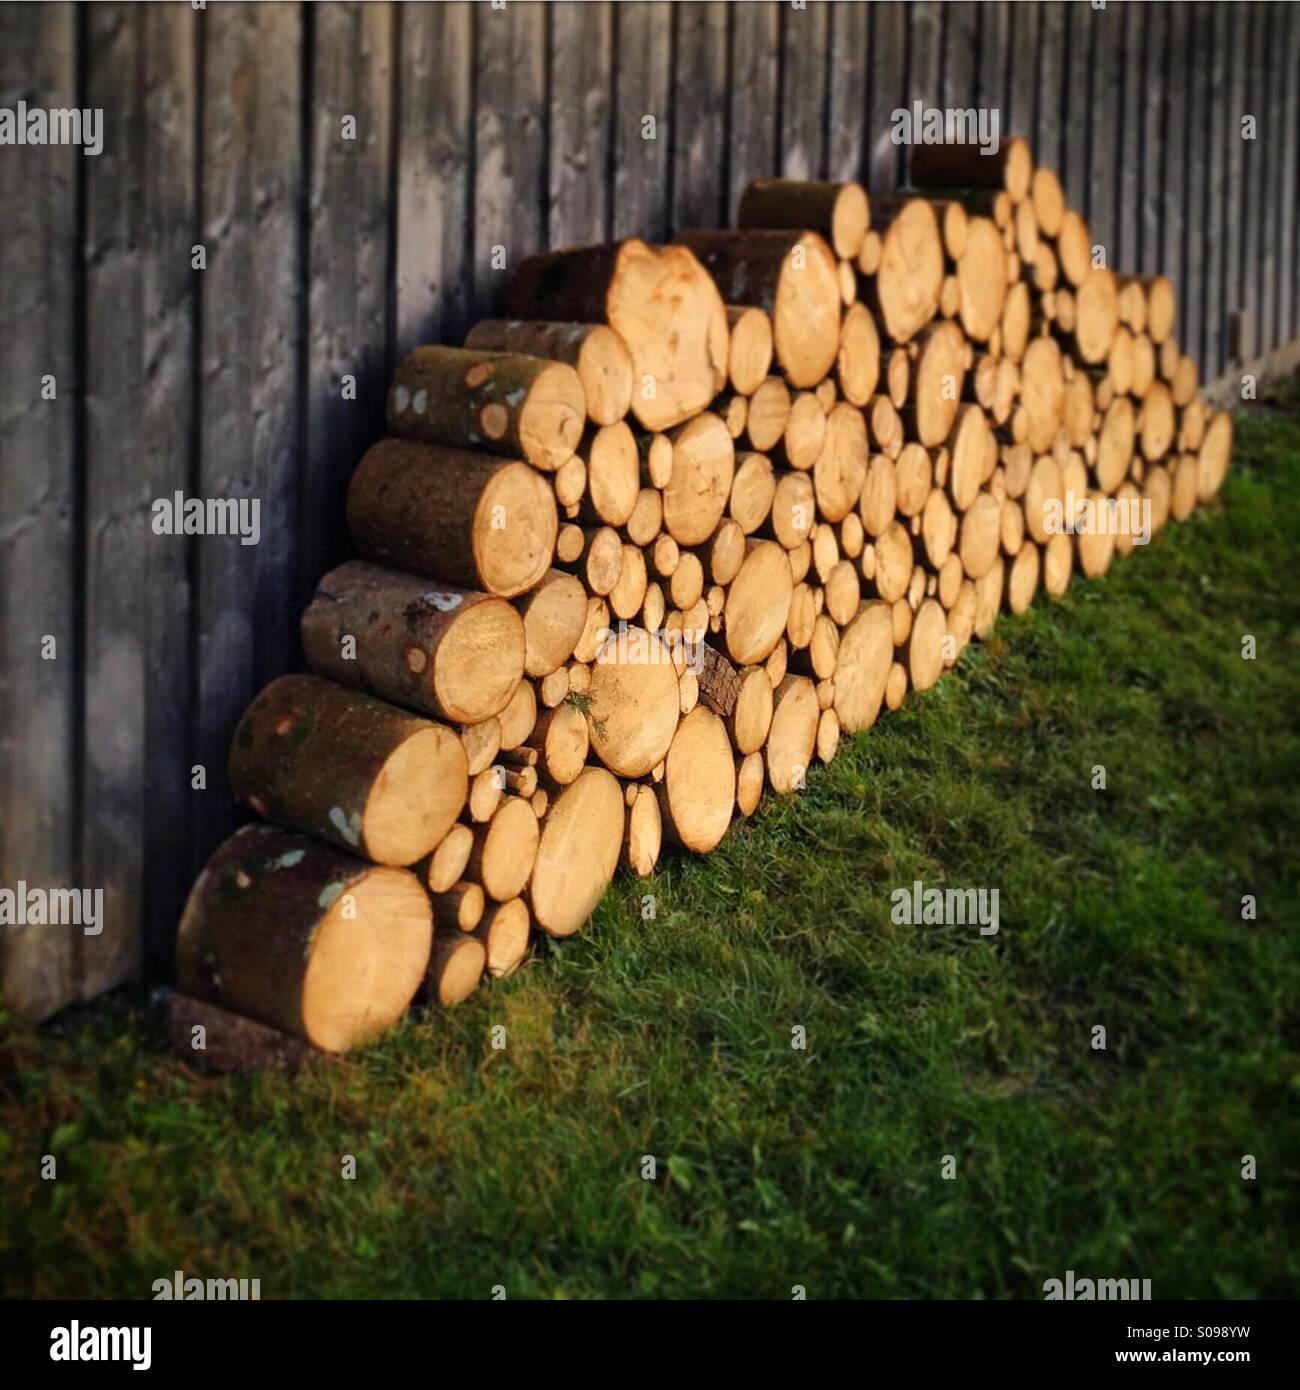 Firewood logs stacked against a wooden building in Baveria, Germany. - Stock Image